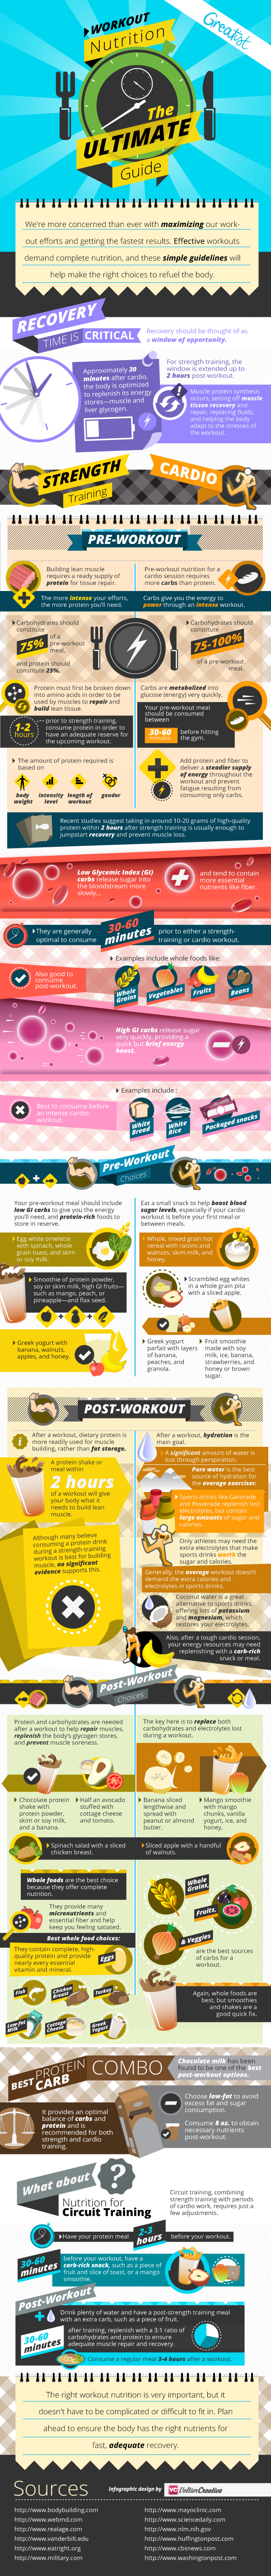 Workout And Nutrition: The Correct Ratio - Infographic